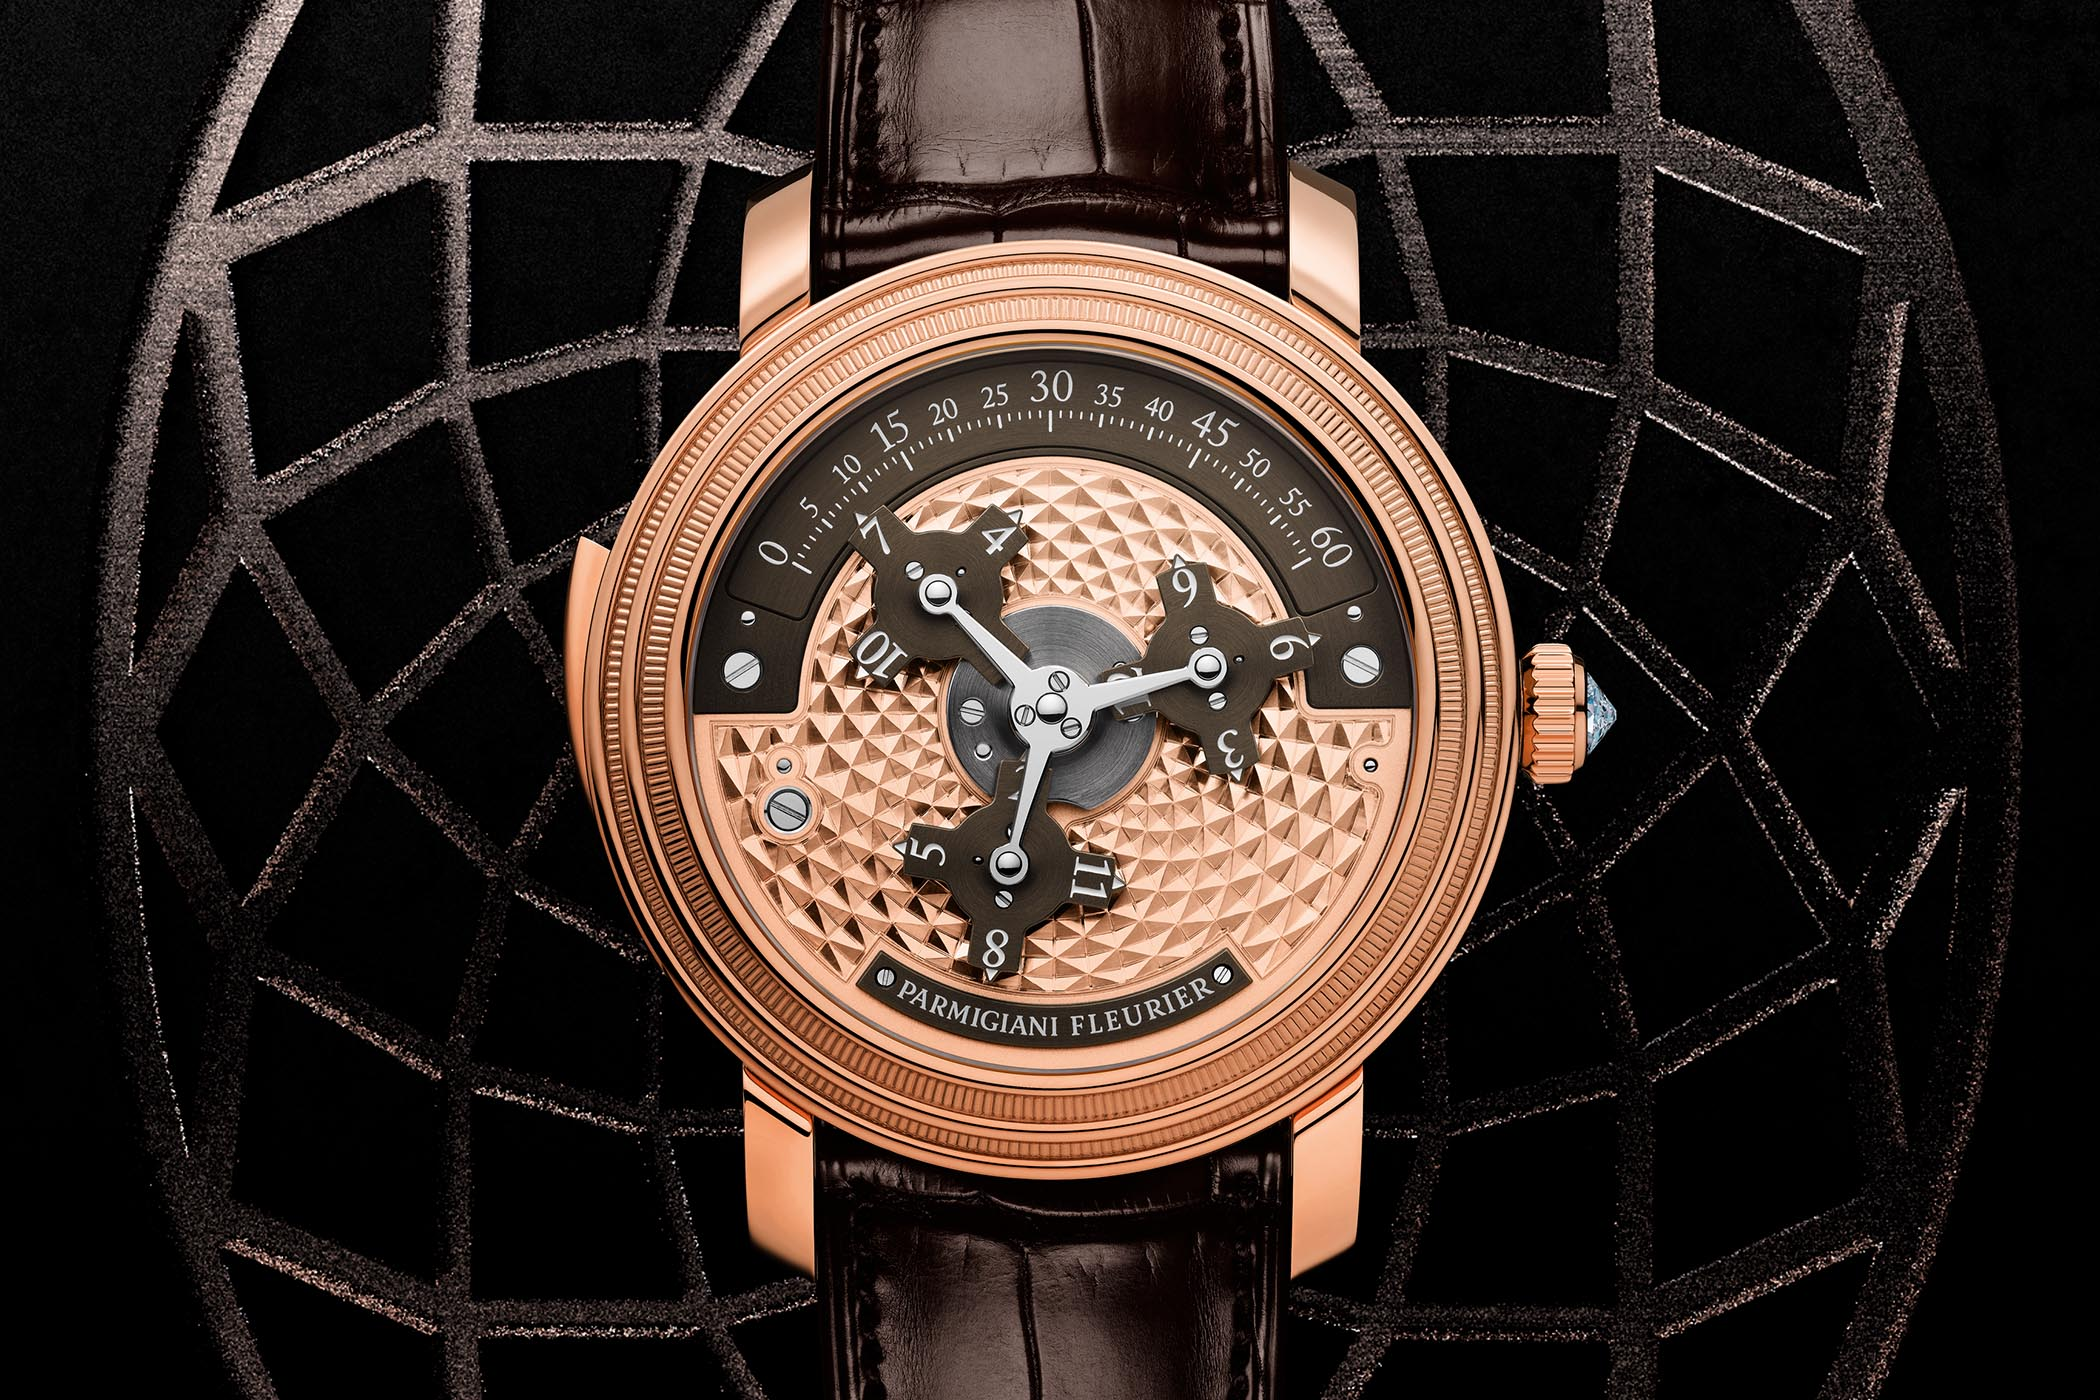 The legendary Swiss watch brand Parmigiani Fleurier has arrived in India